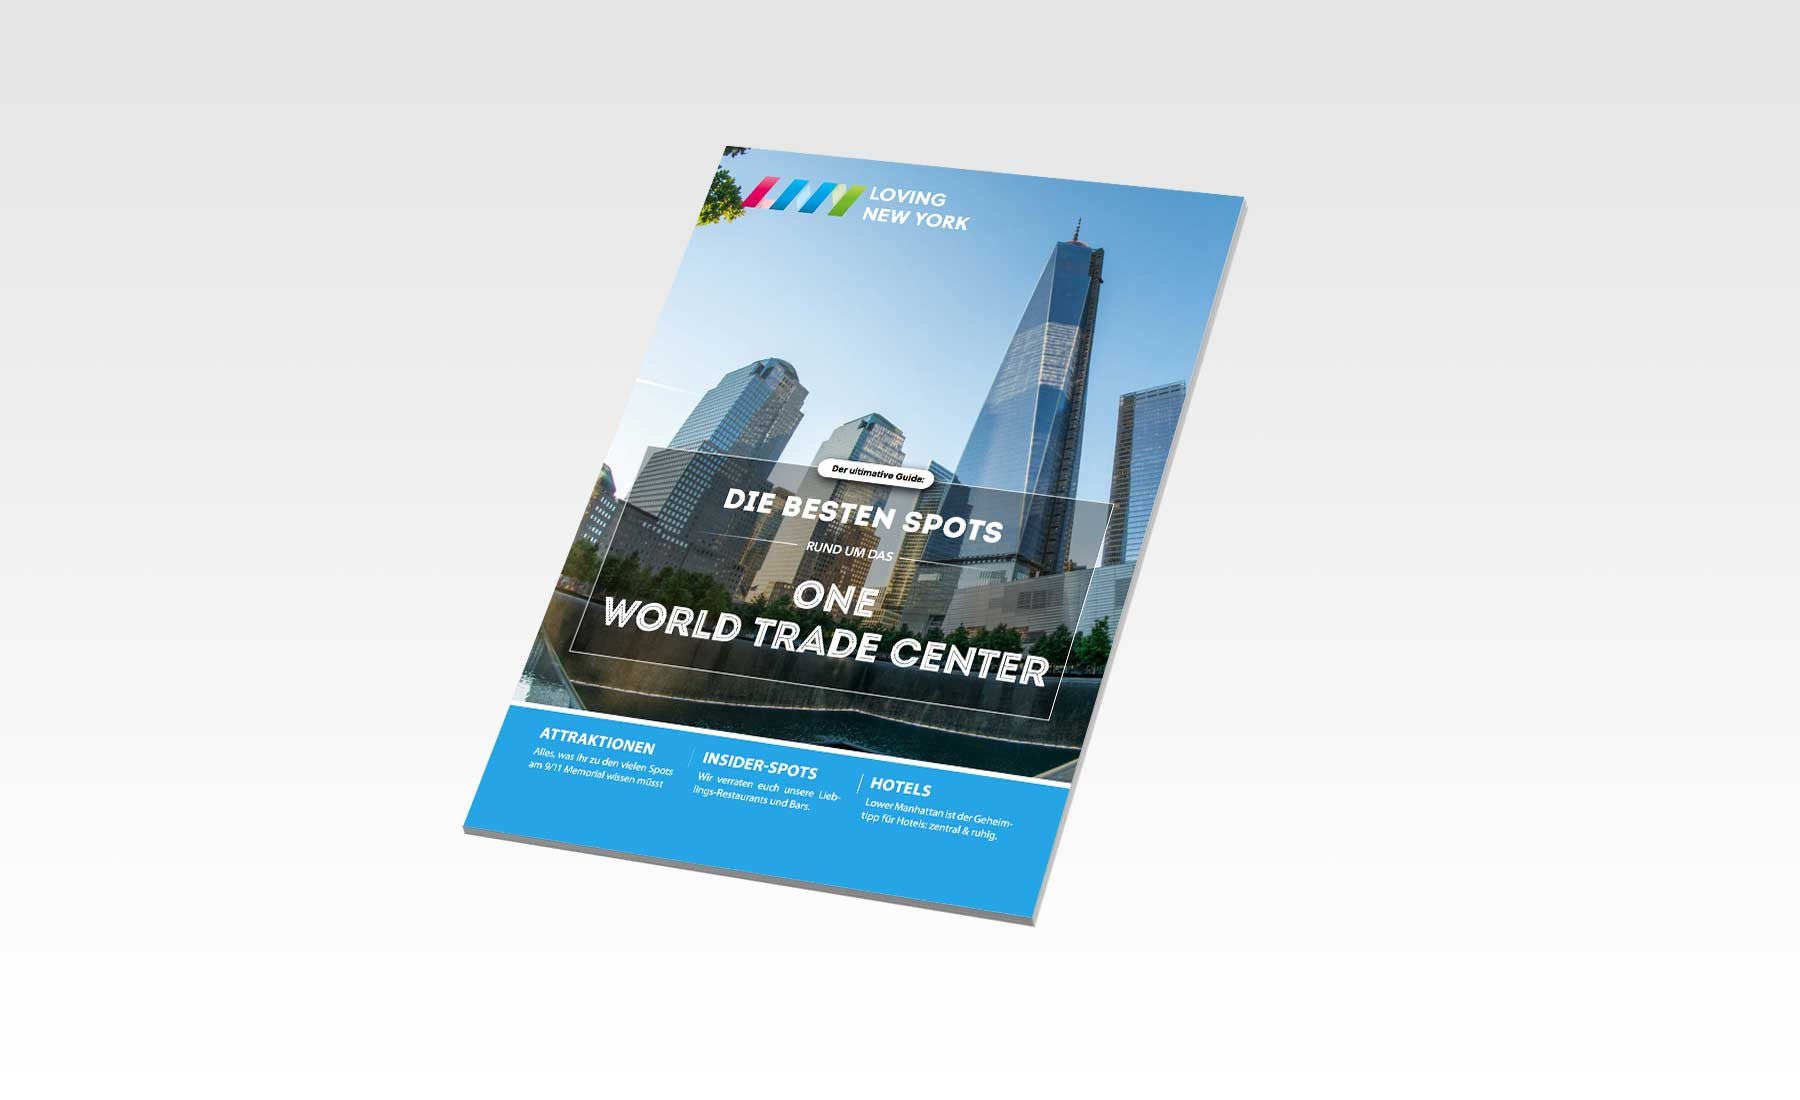 Neues ePaper: Die besten Spots am One World Trade Center